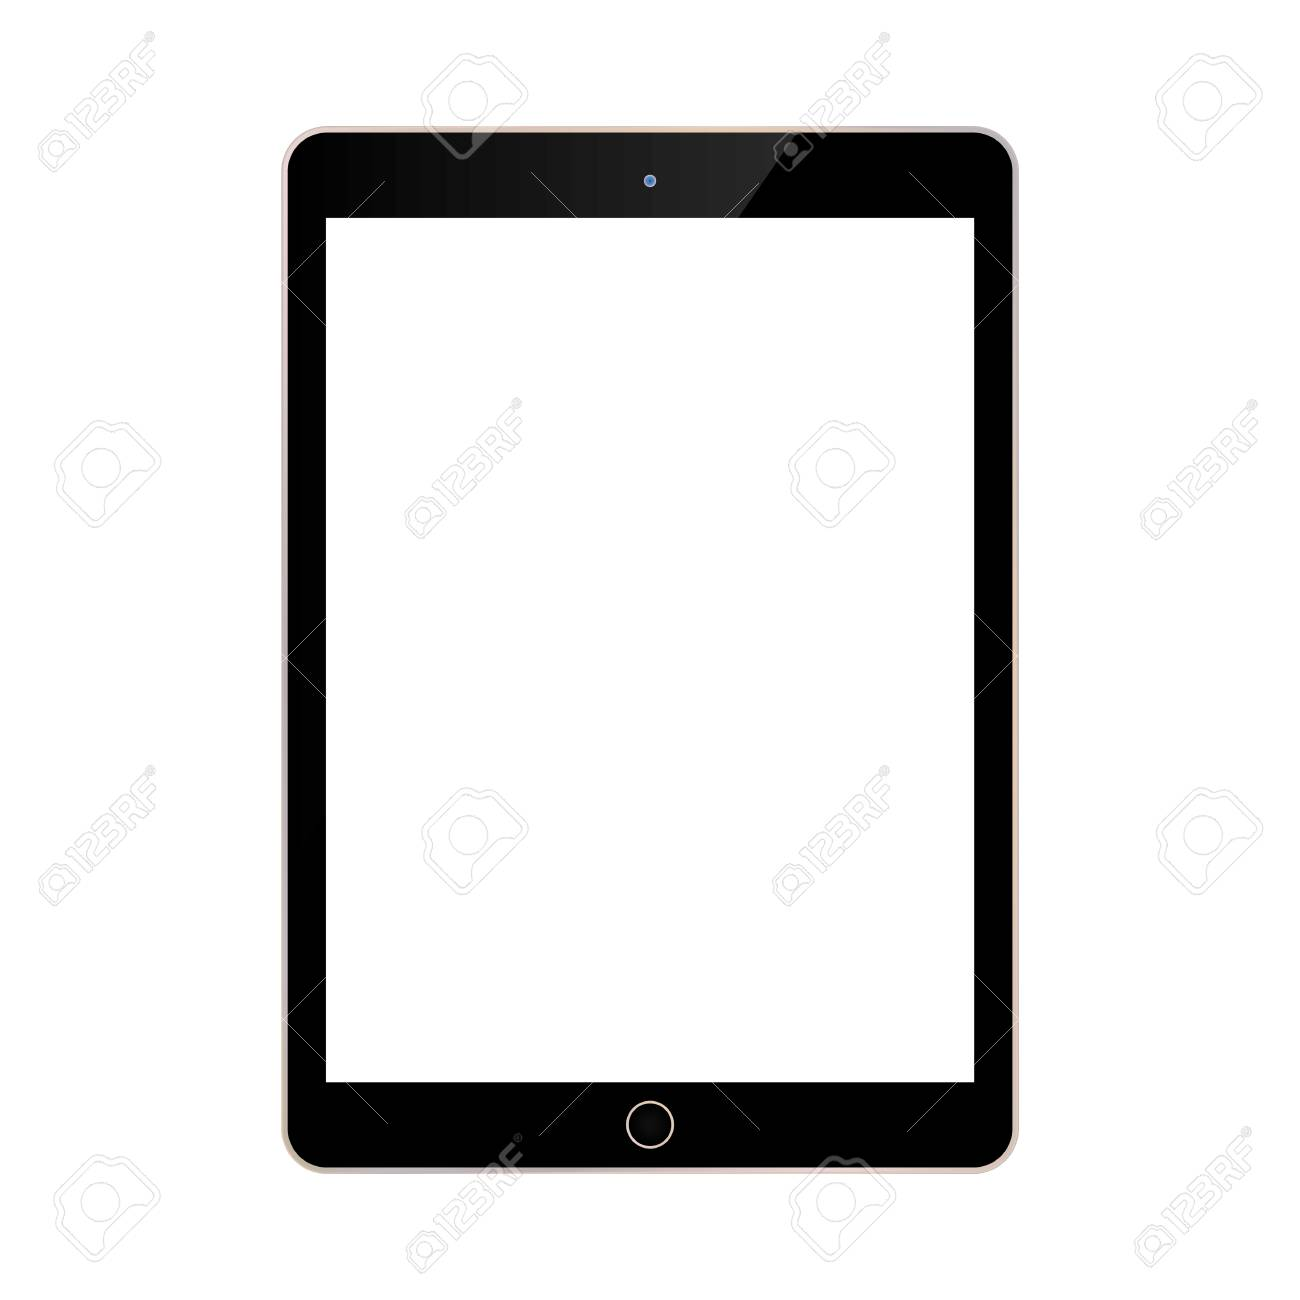 black tablet with white screen front view on blue background. - 121278675